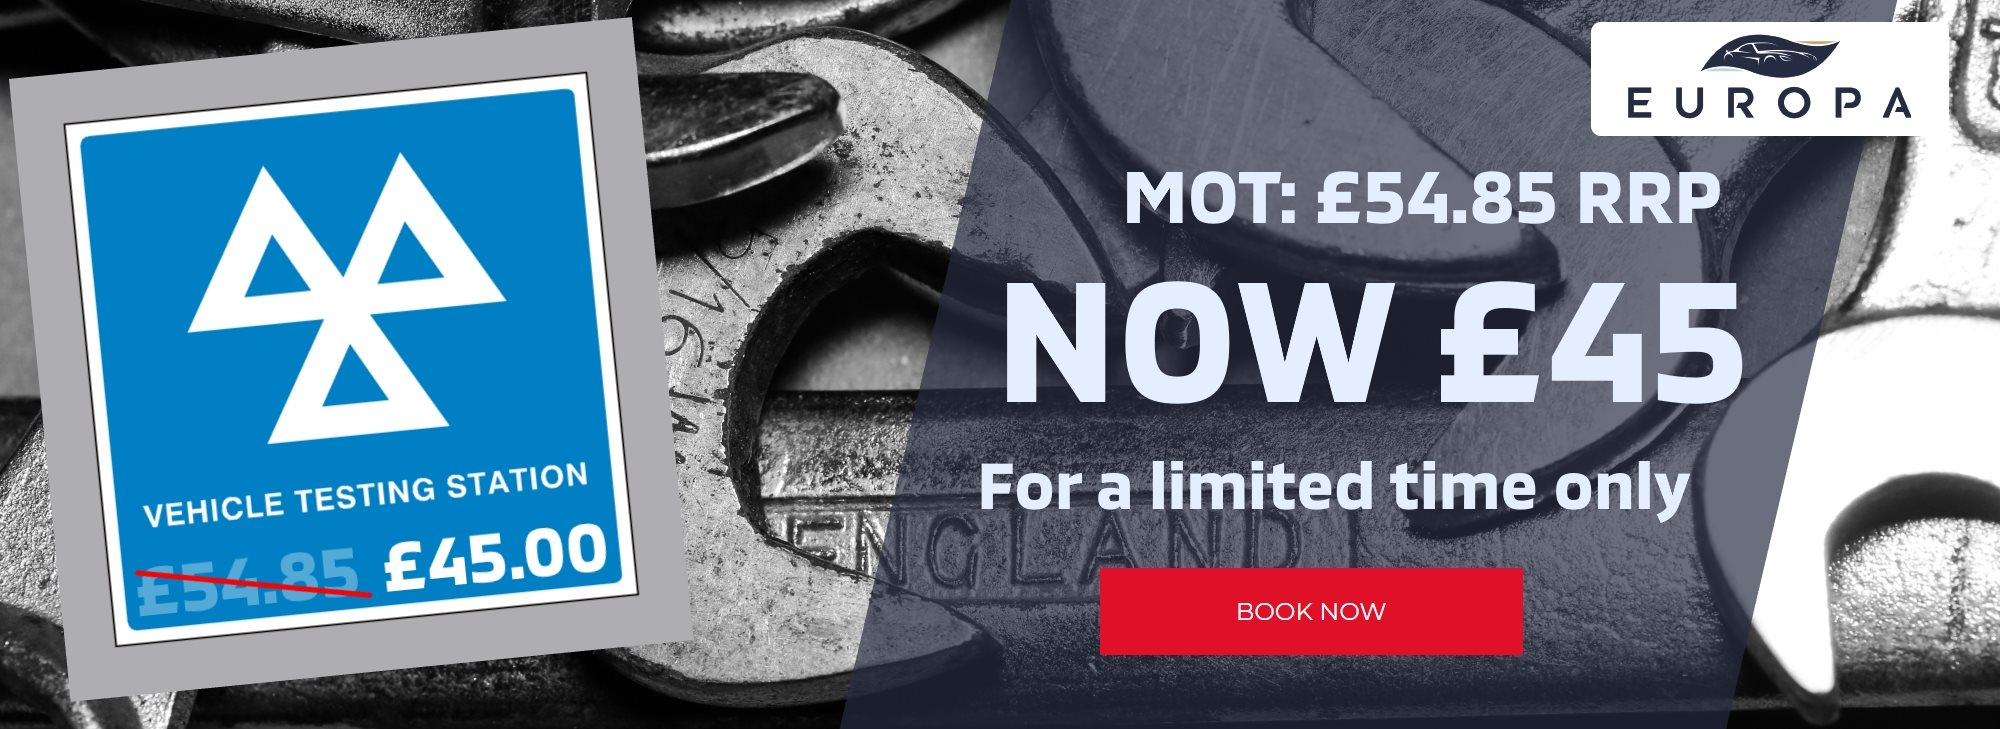 MOT Booking for £45.00 AT Europa Sheffield